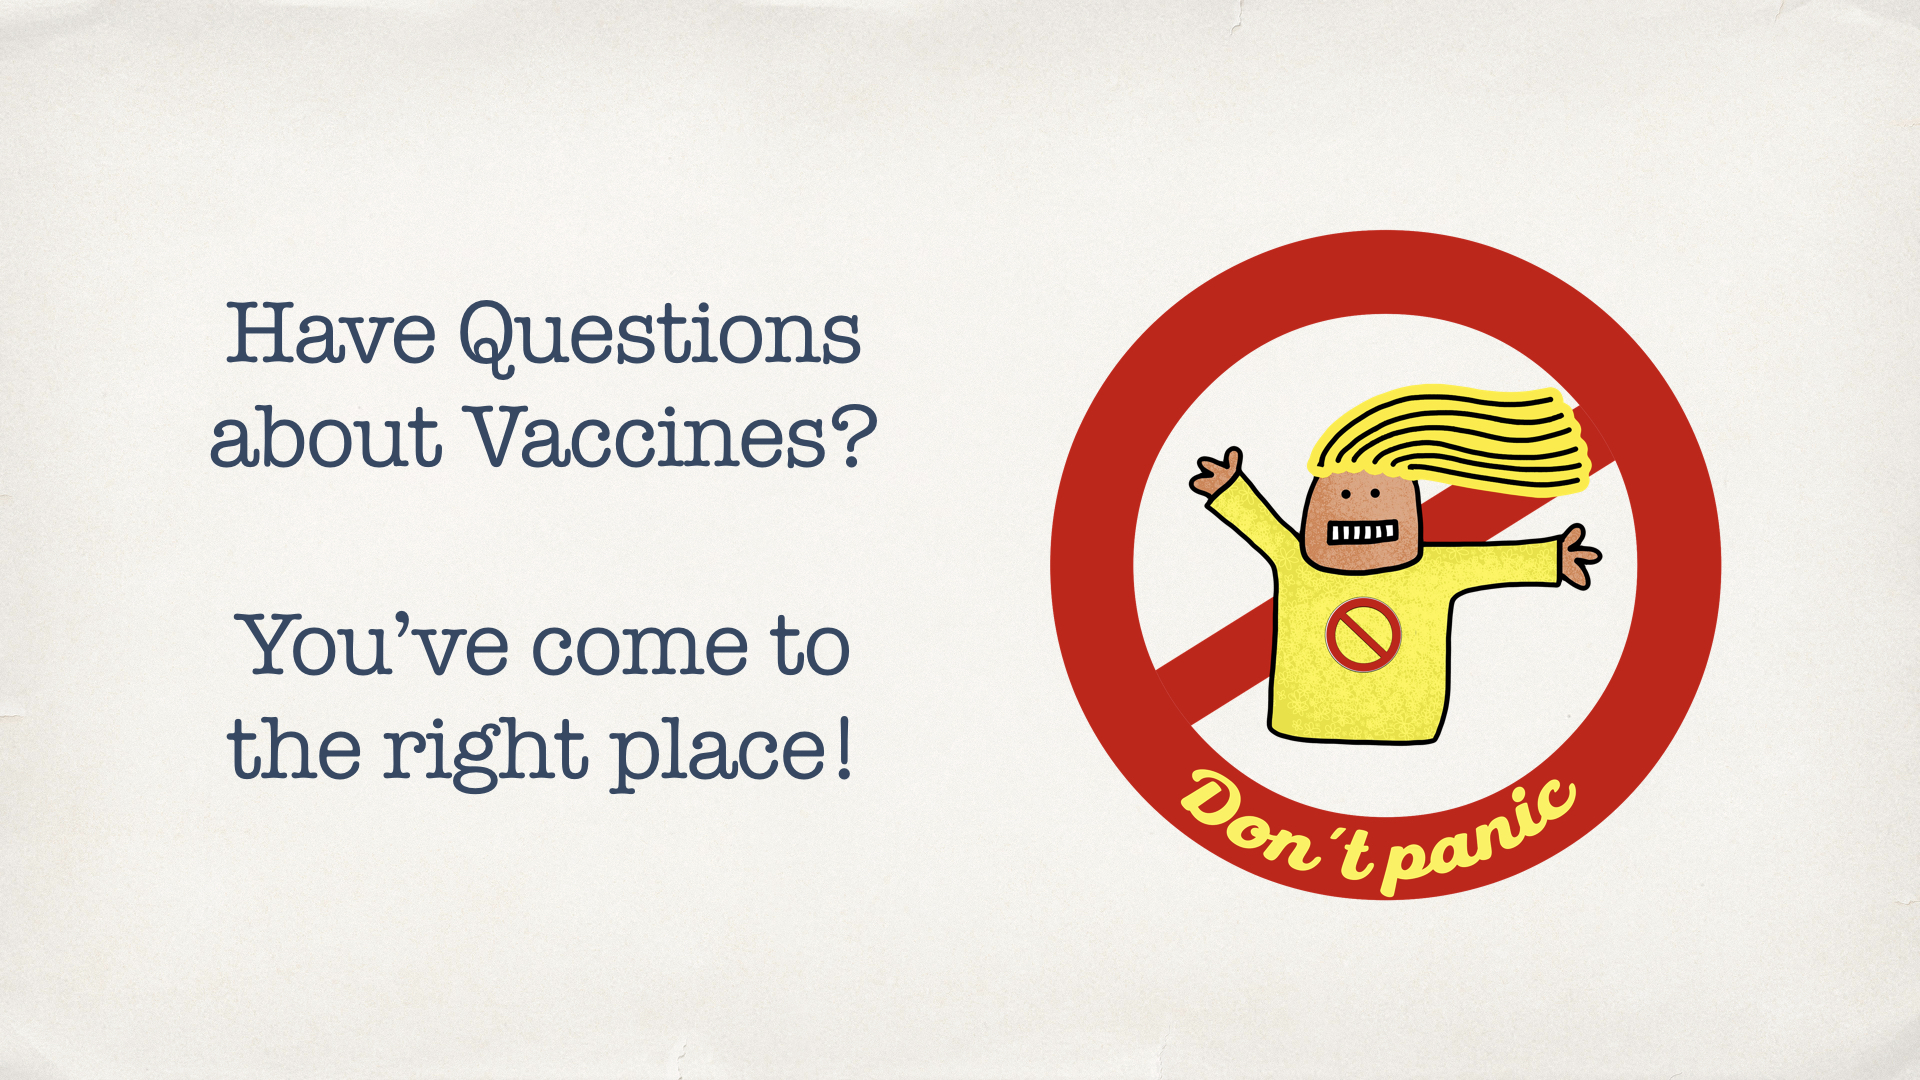 Have questions about vaccines? You've come to the right place!